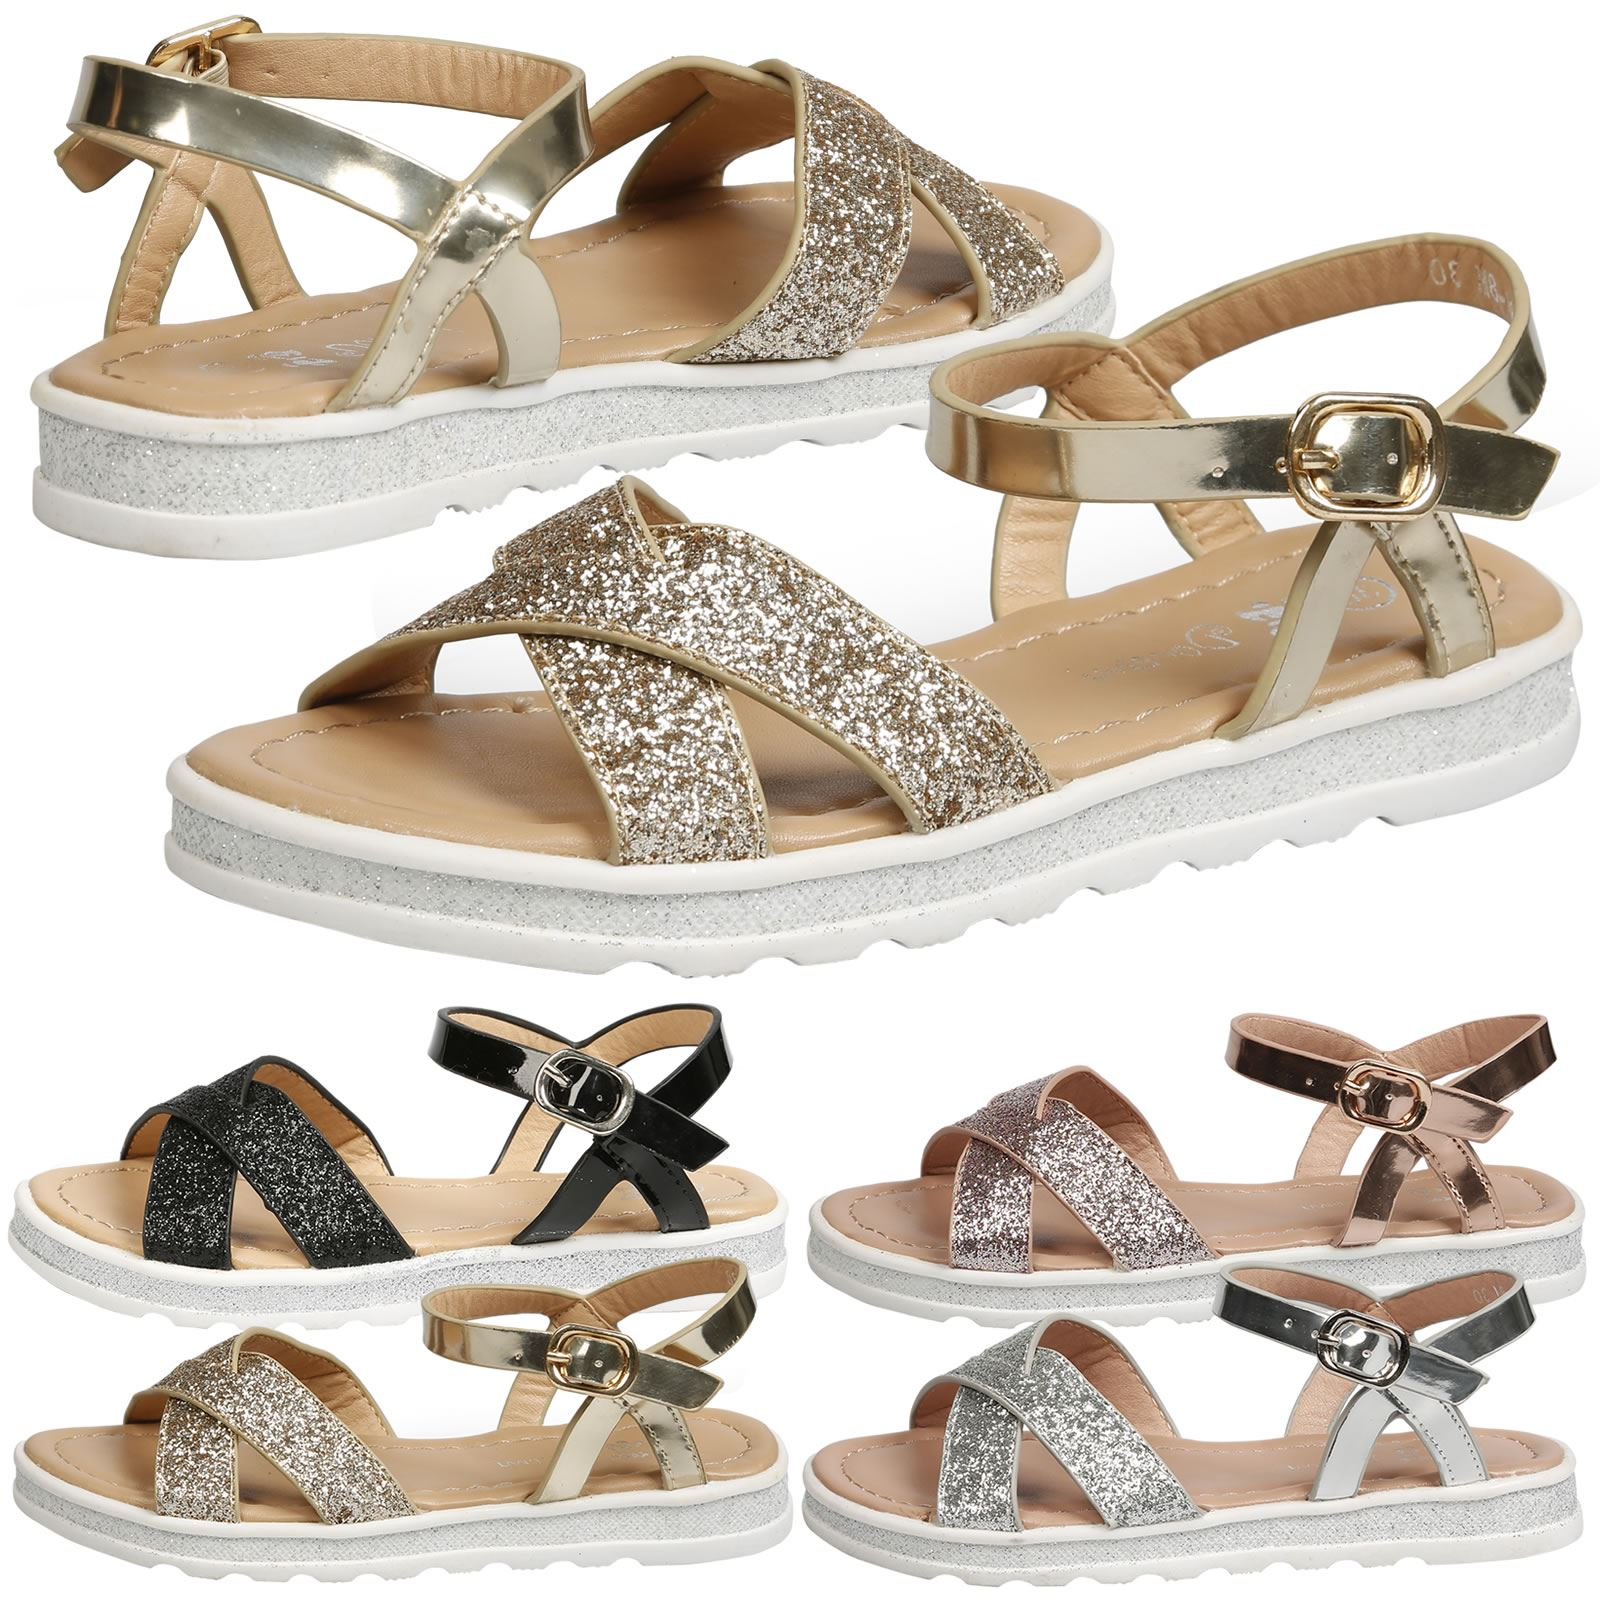 eed9c8b7f39f GIRLS CHILDRENS KIDS SANDALS SHOES LOW HEEL GLITTER CASUAL STRAPPY ...